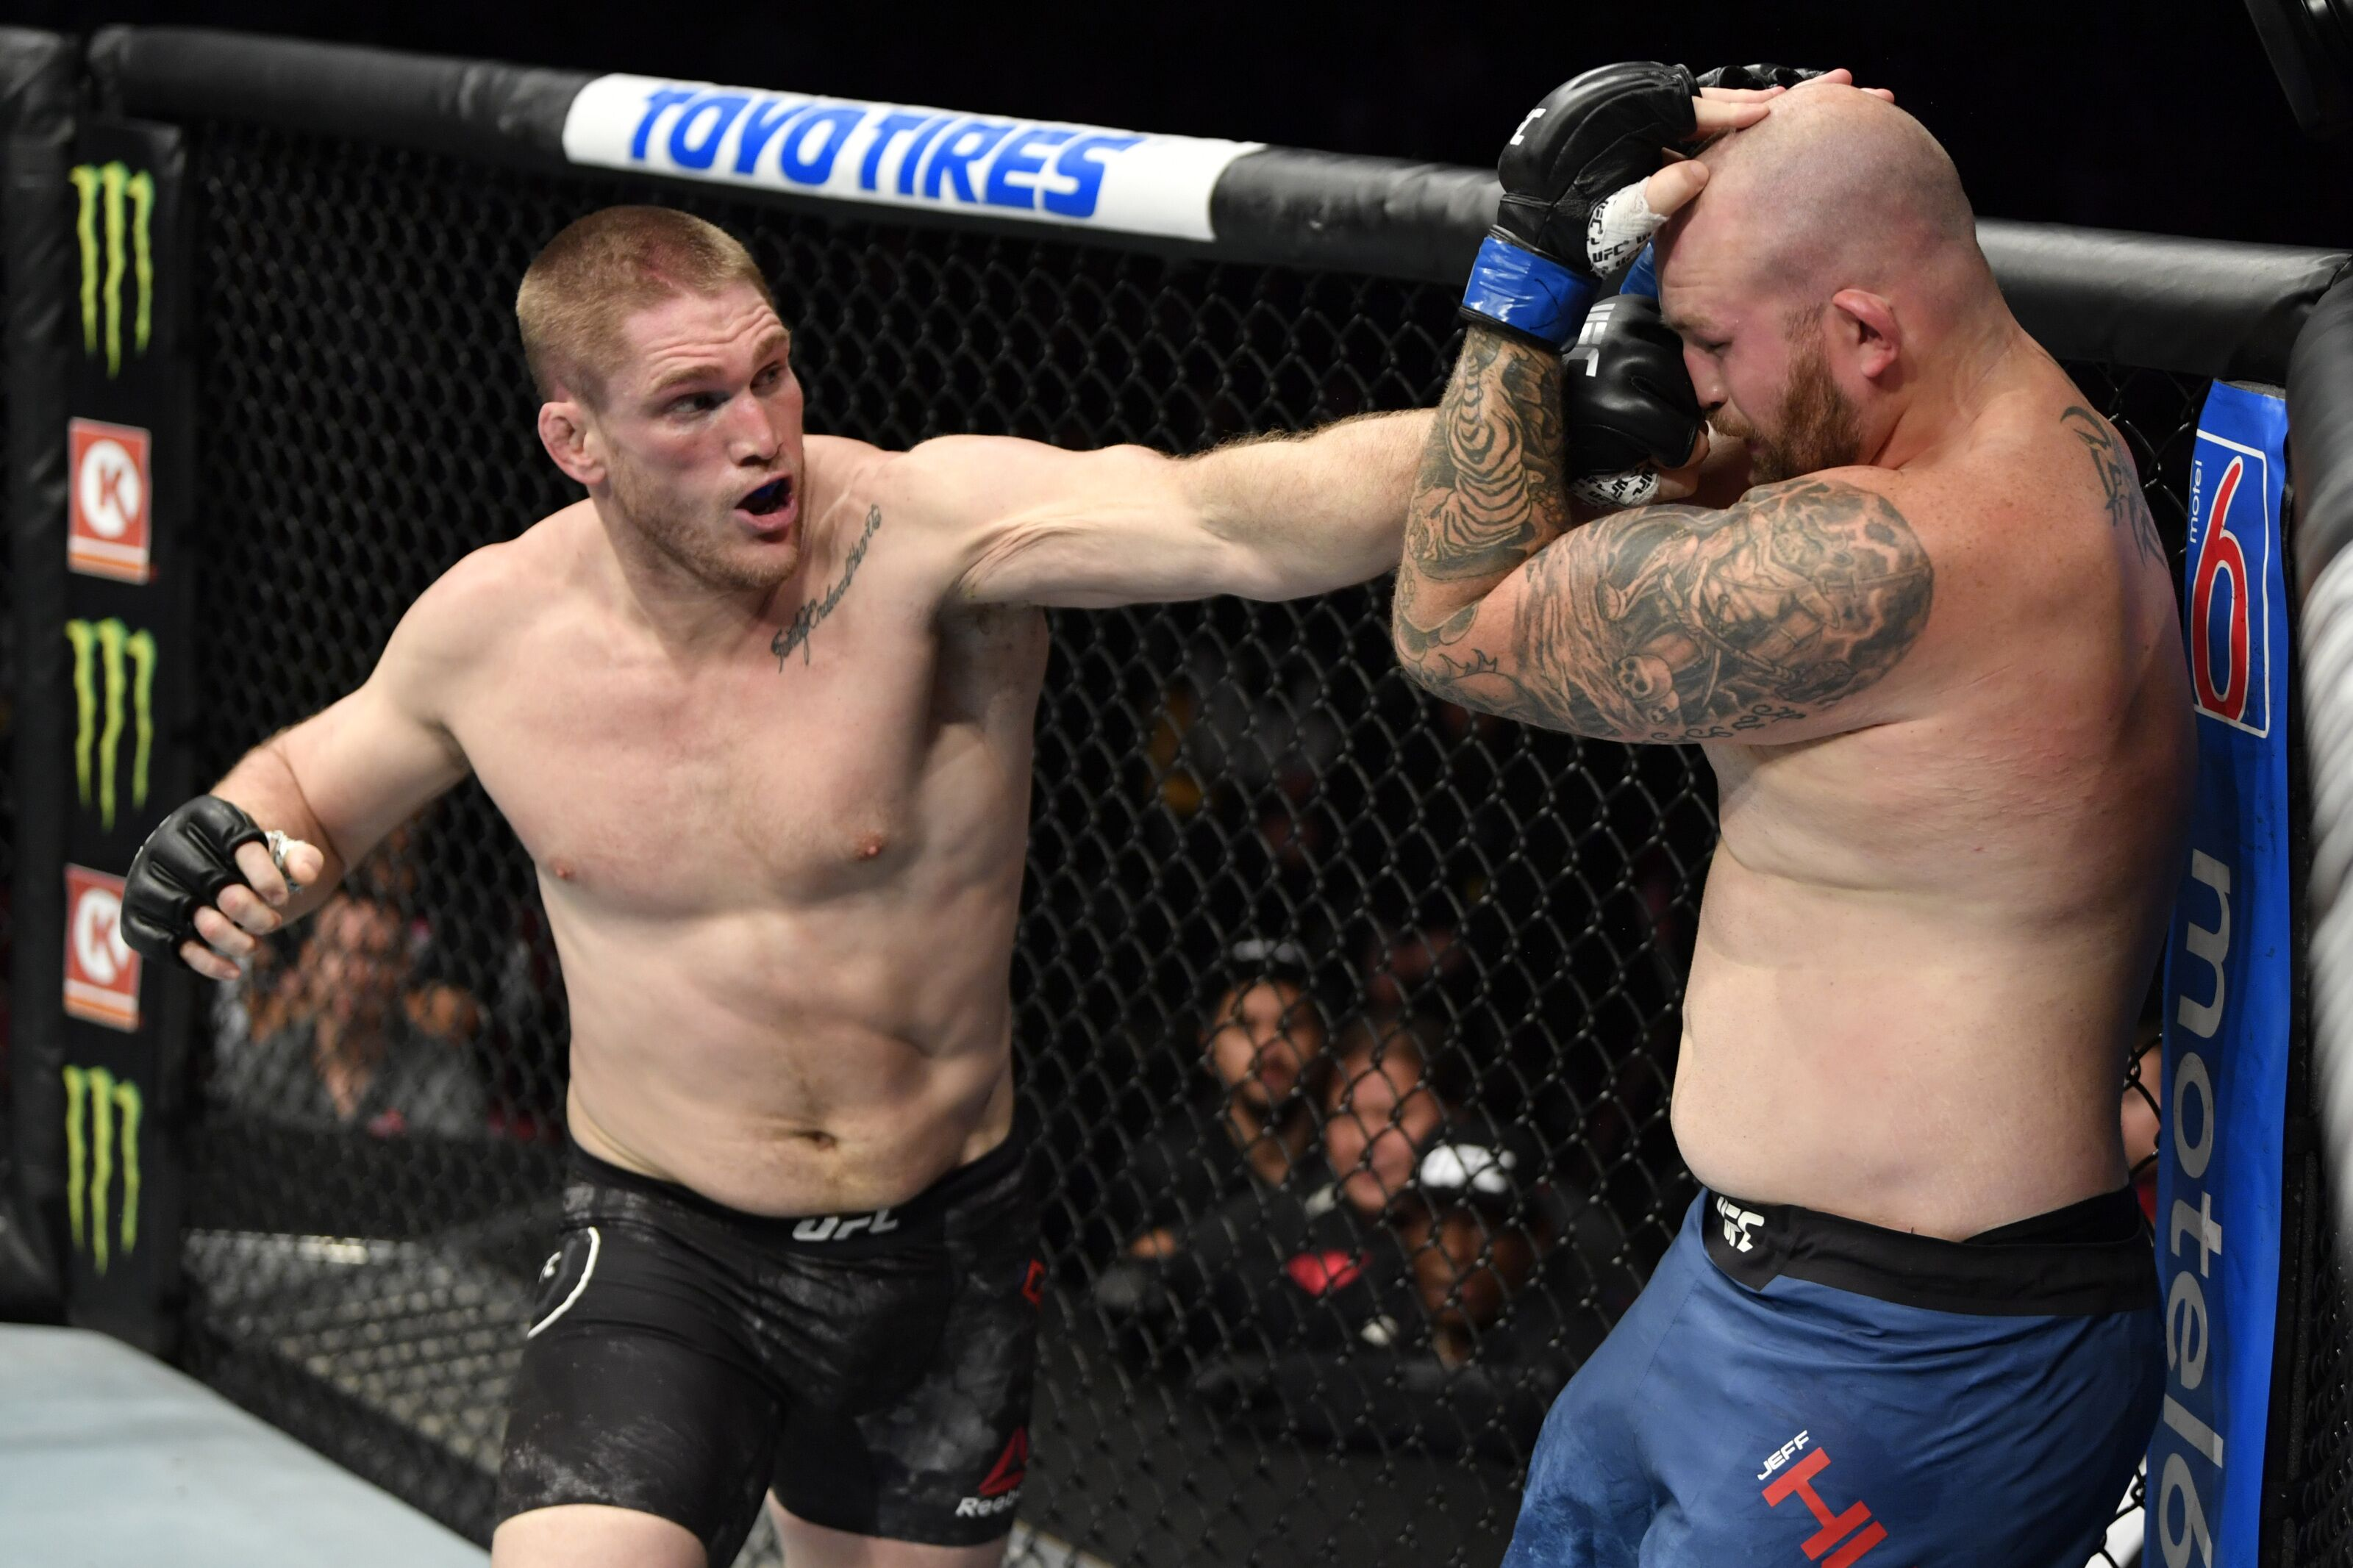 UFC Vancouver: Todd Duffee return to the Octagon ends in a no-contest against Jeff Hughes